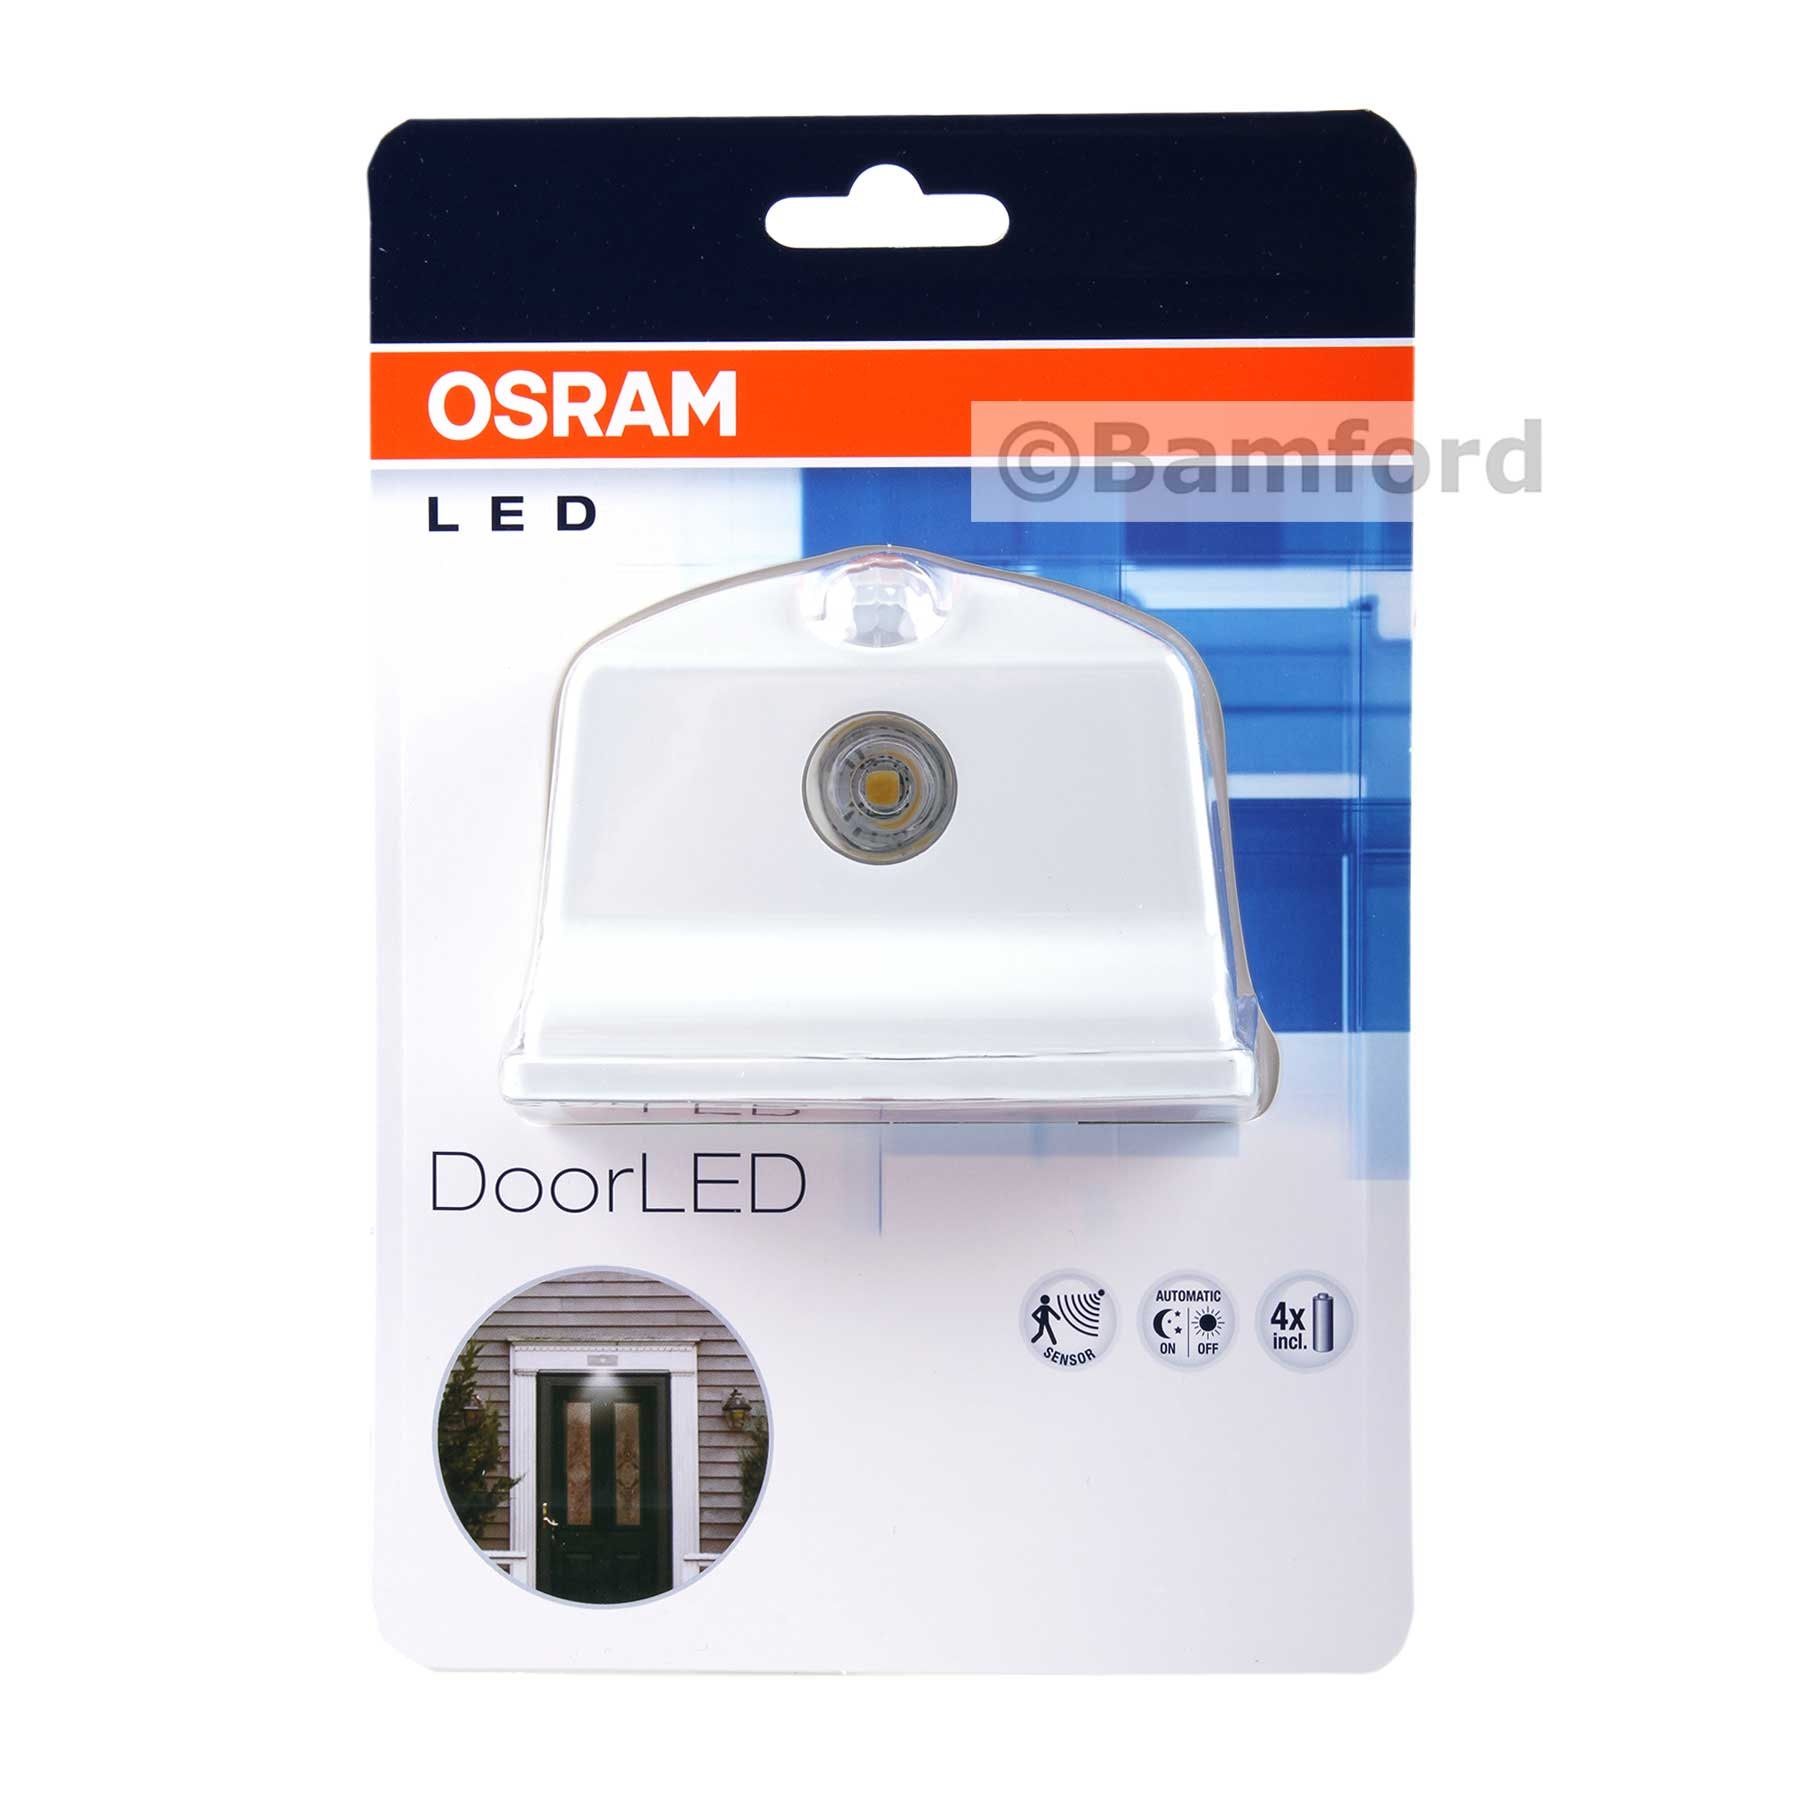 Osram Door LED in White Integrated Light and Motion Sensor | Osram ...